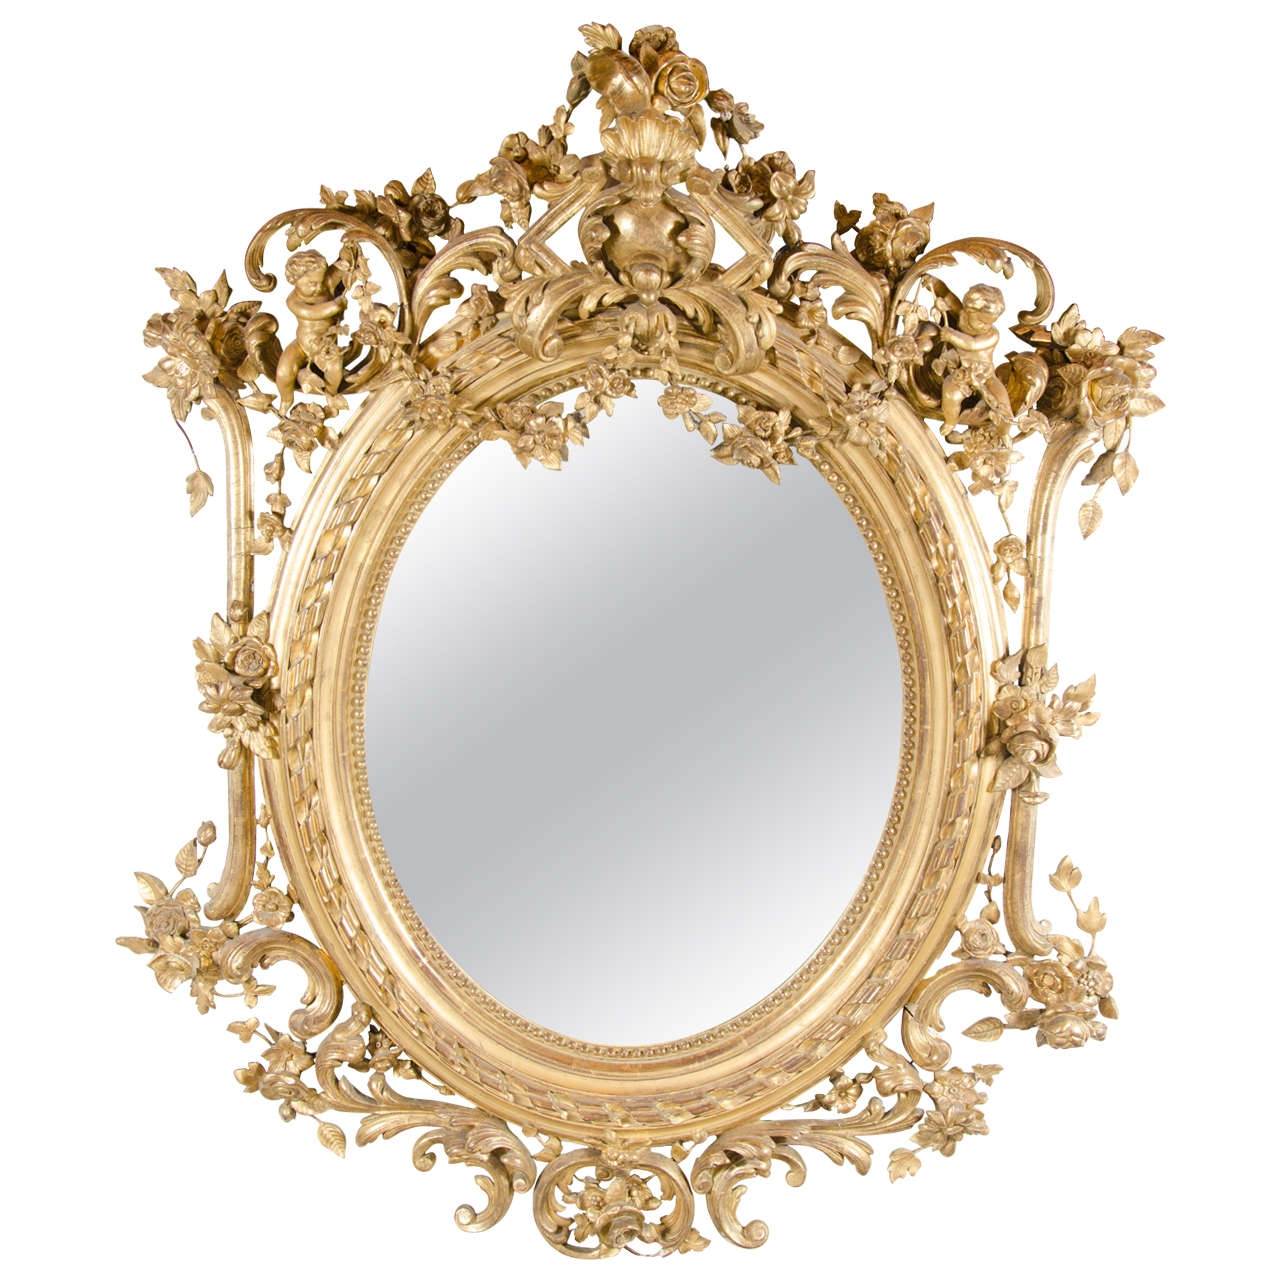 French Rococo Oval Mirror With 24 Karat Gold Gilt And Foliage Throughout Oval French Mirror (Image 10 of 15)